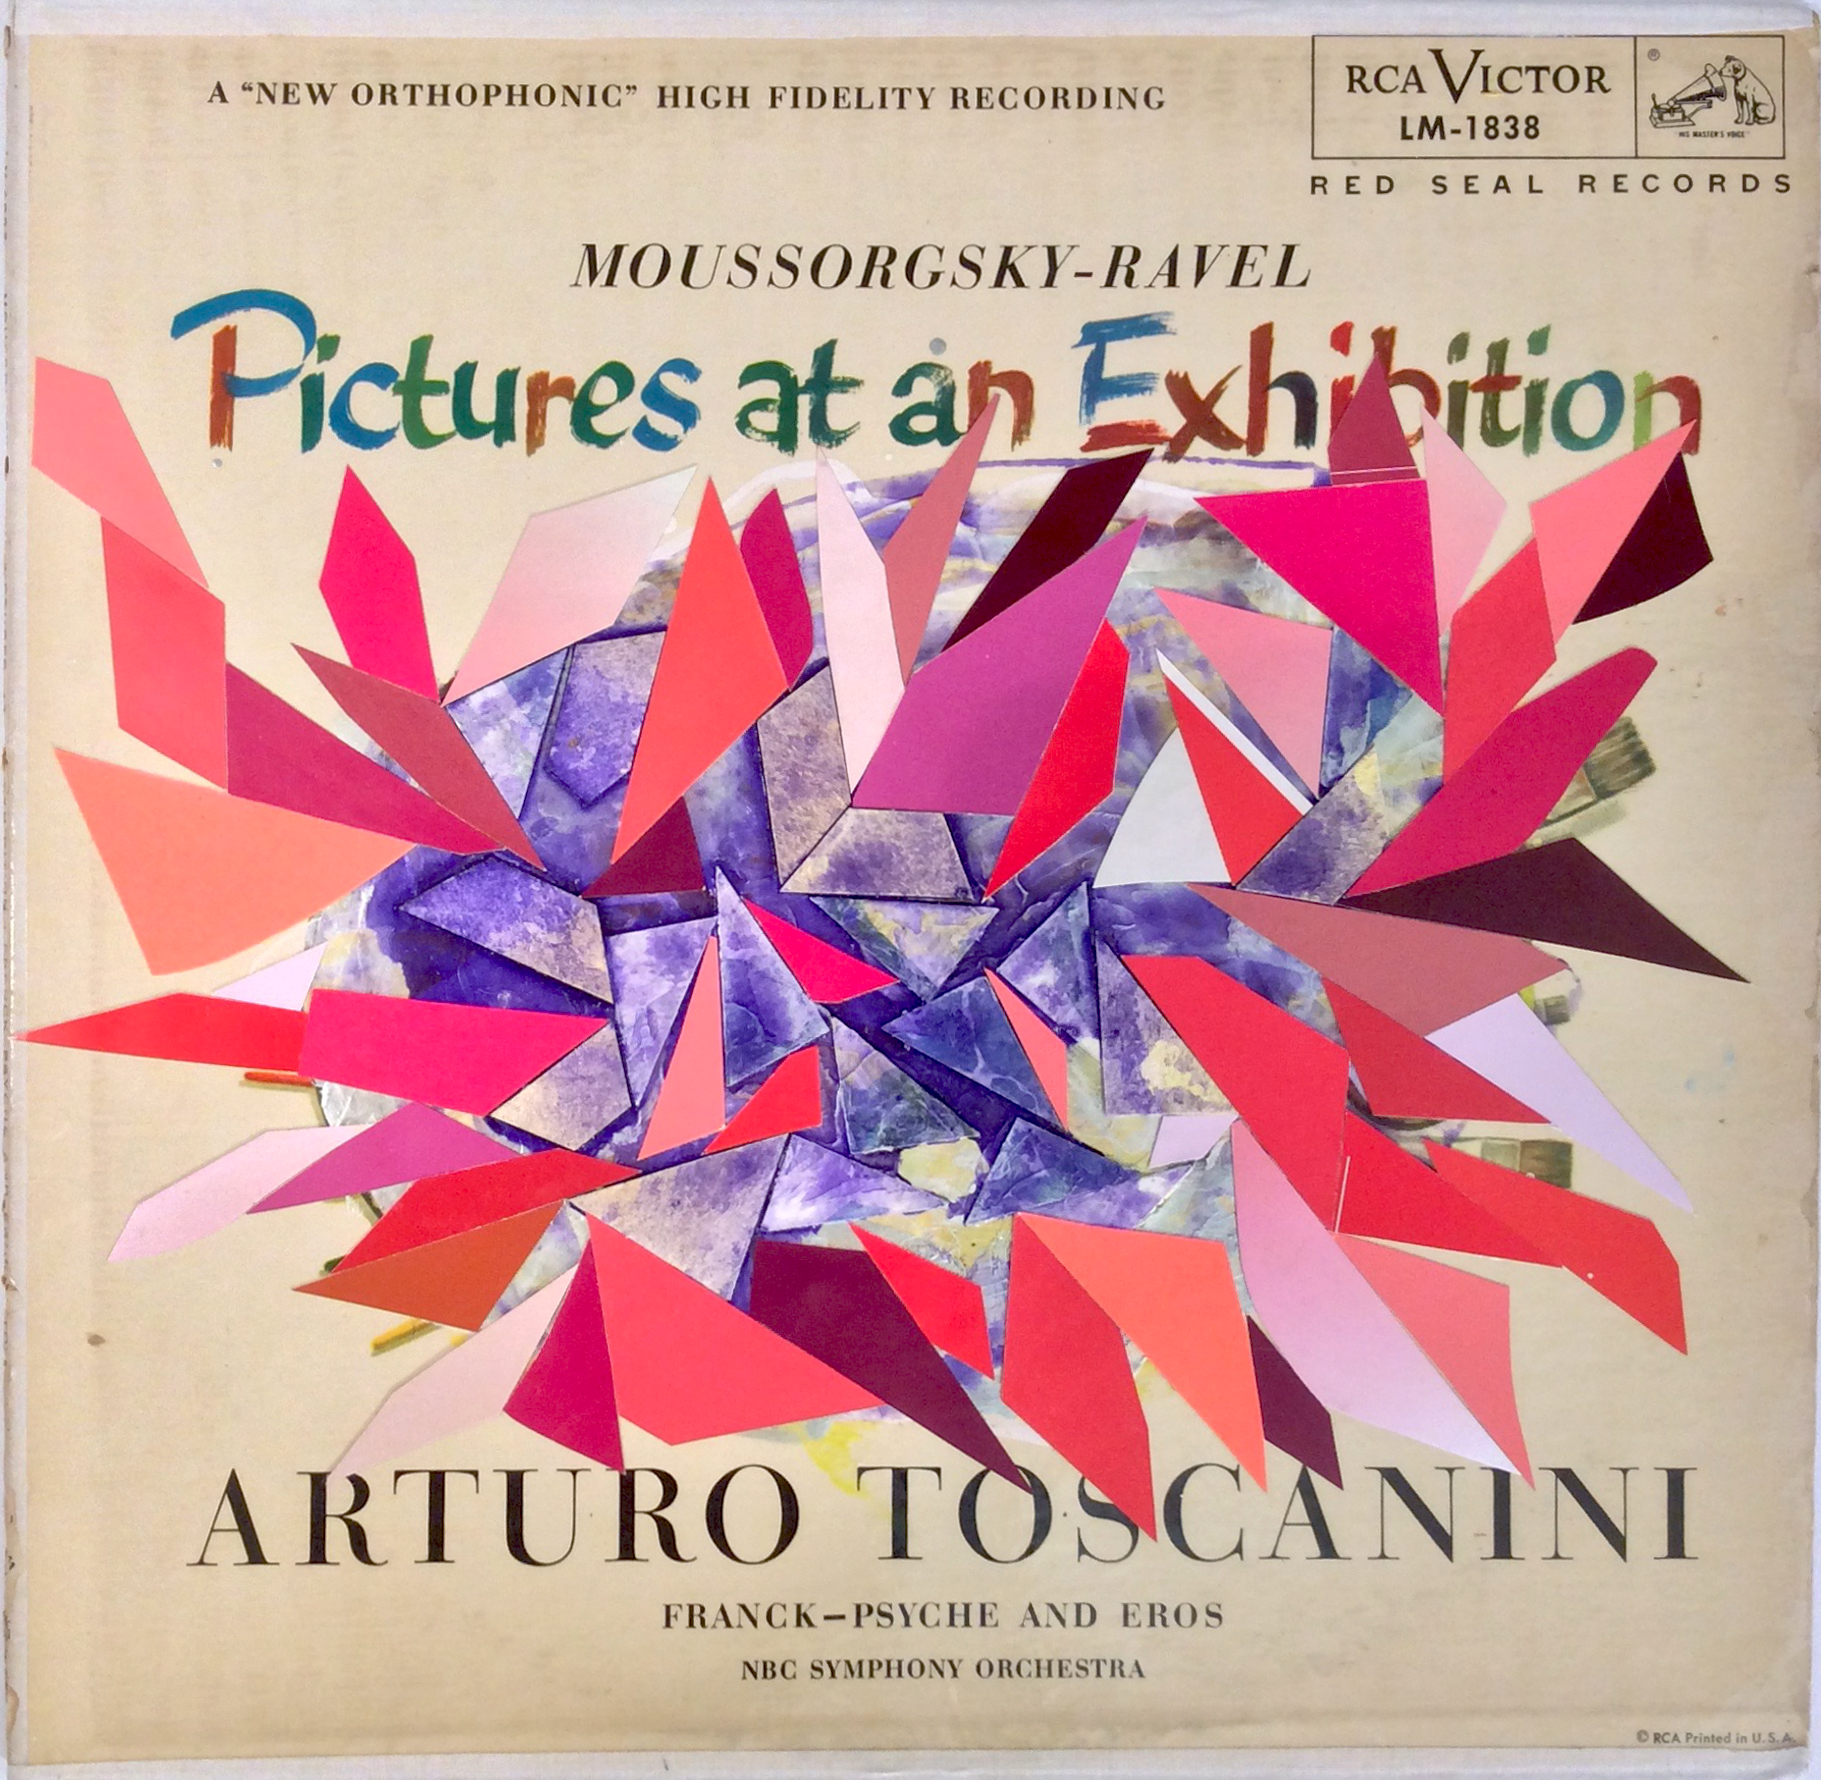 "Lisa Blas, Watercolor paper, card stock and acrylic paint on Arturo Toscanini ""Pictures at an Exhibition"" record cover, 12 x 12 inches, 2015, part of "" RIEN NE VA PLUS ! Pictures at an exhibition. Juan d'Oultremont "",   Musée d'Ixelles, Brussels"